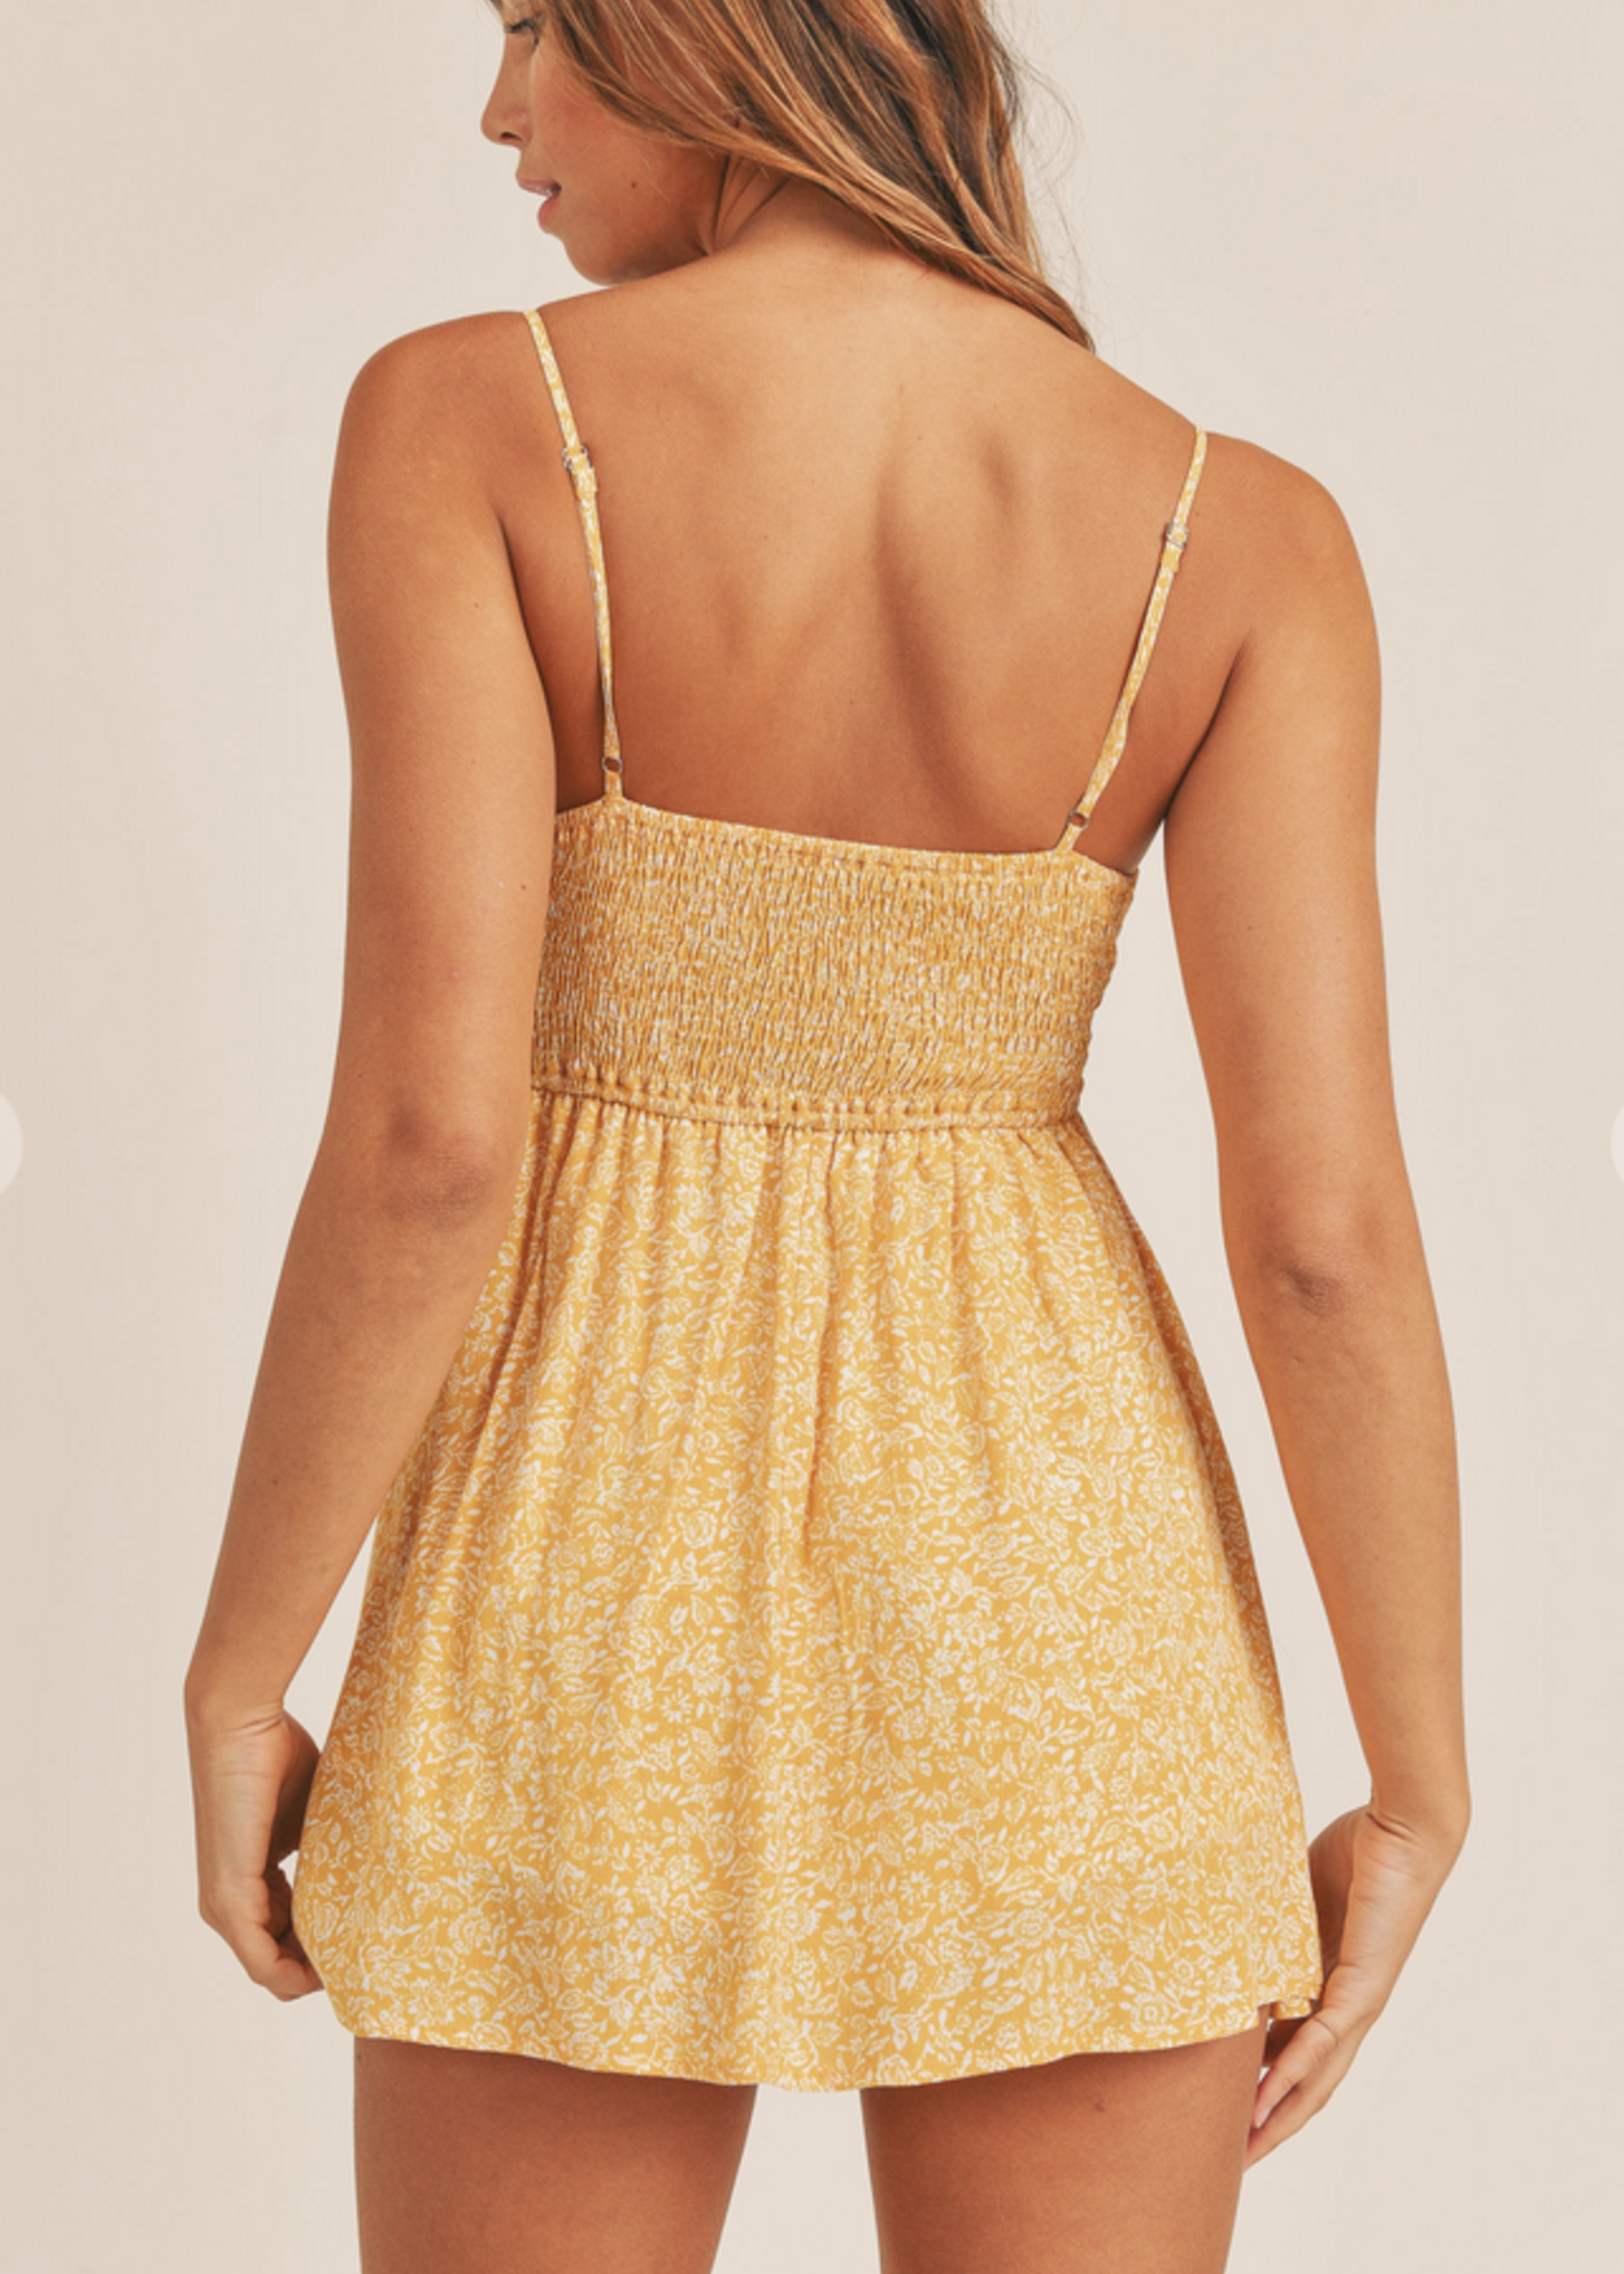 mable roth romper